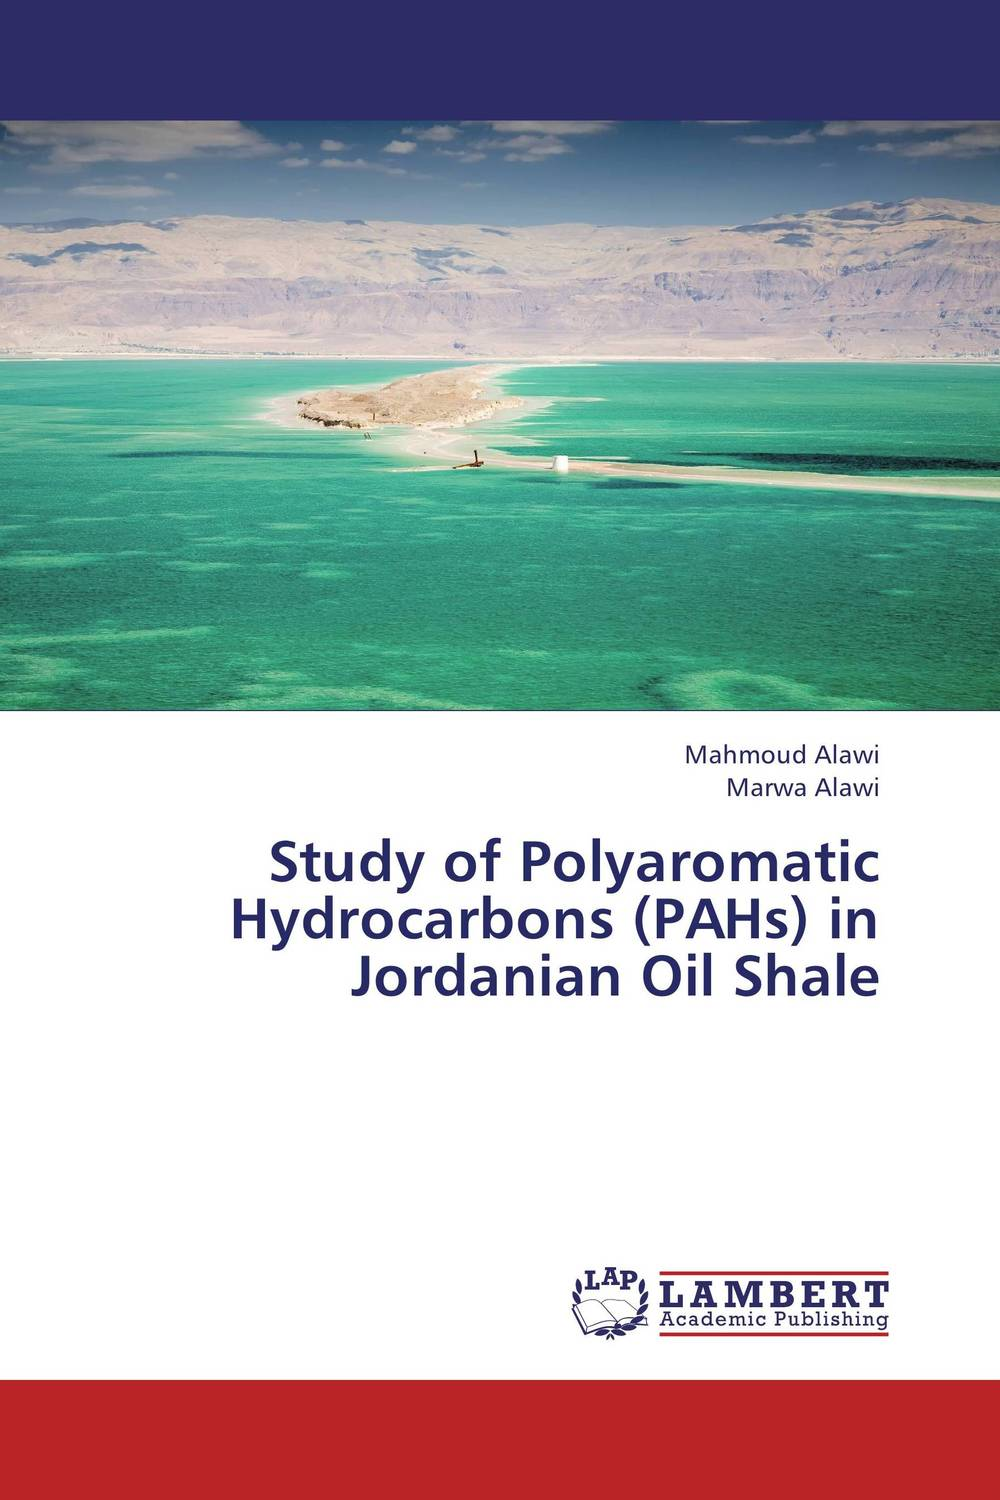 Study of Polyaromatic Hydrocarbons (PAHs) in Jordanian Oil Shale ski jacket women ski pant windproof waterproof snowboard suits snow wear ladies ski jacket sets outdoor suits